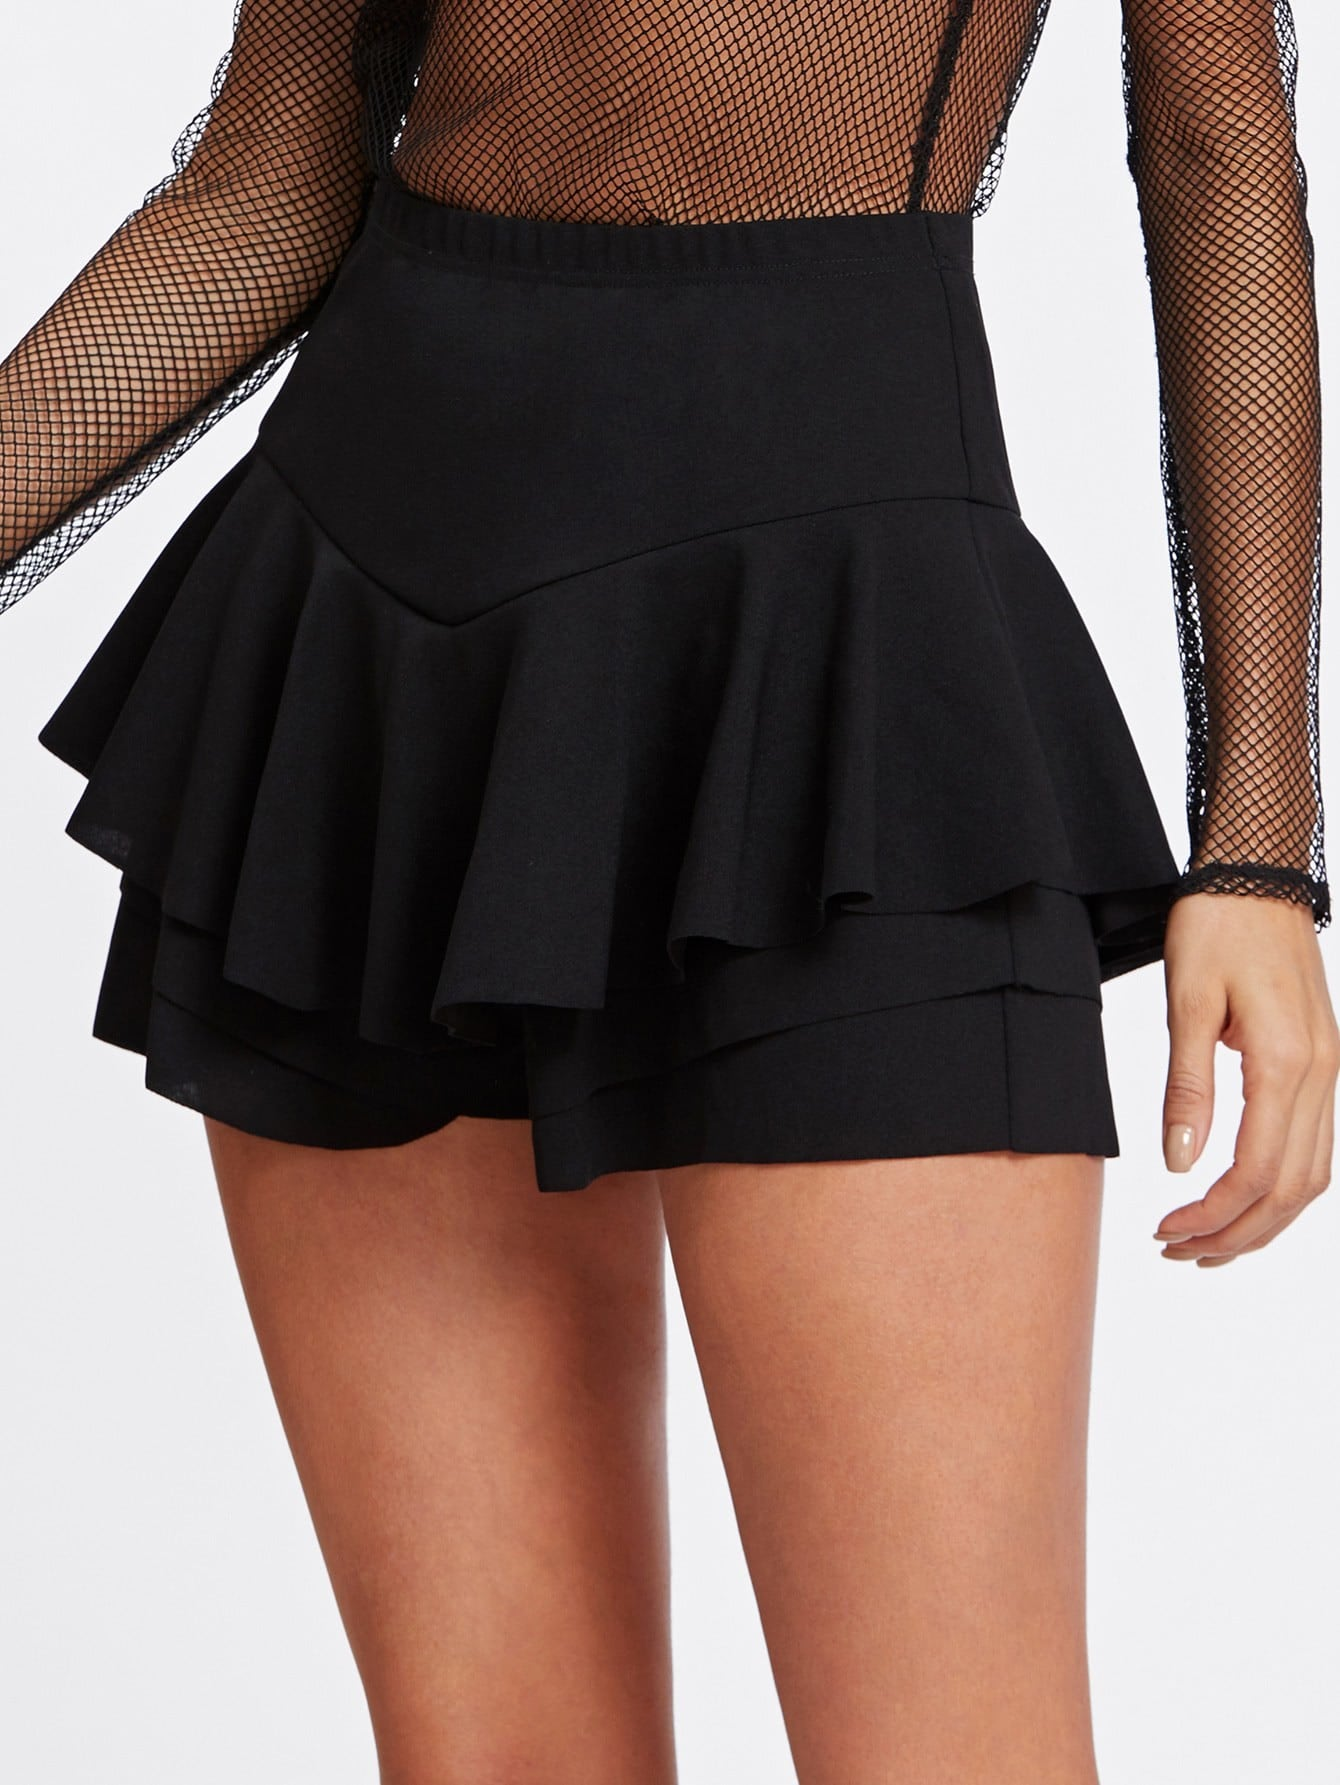 Flounce Layered Skirt Shorts flounce light up cosplay skirt